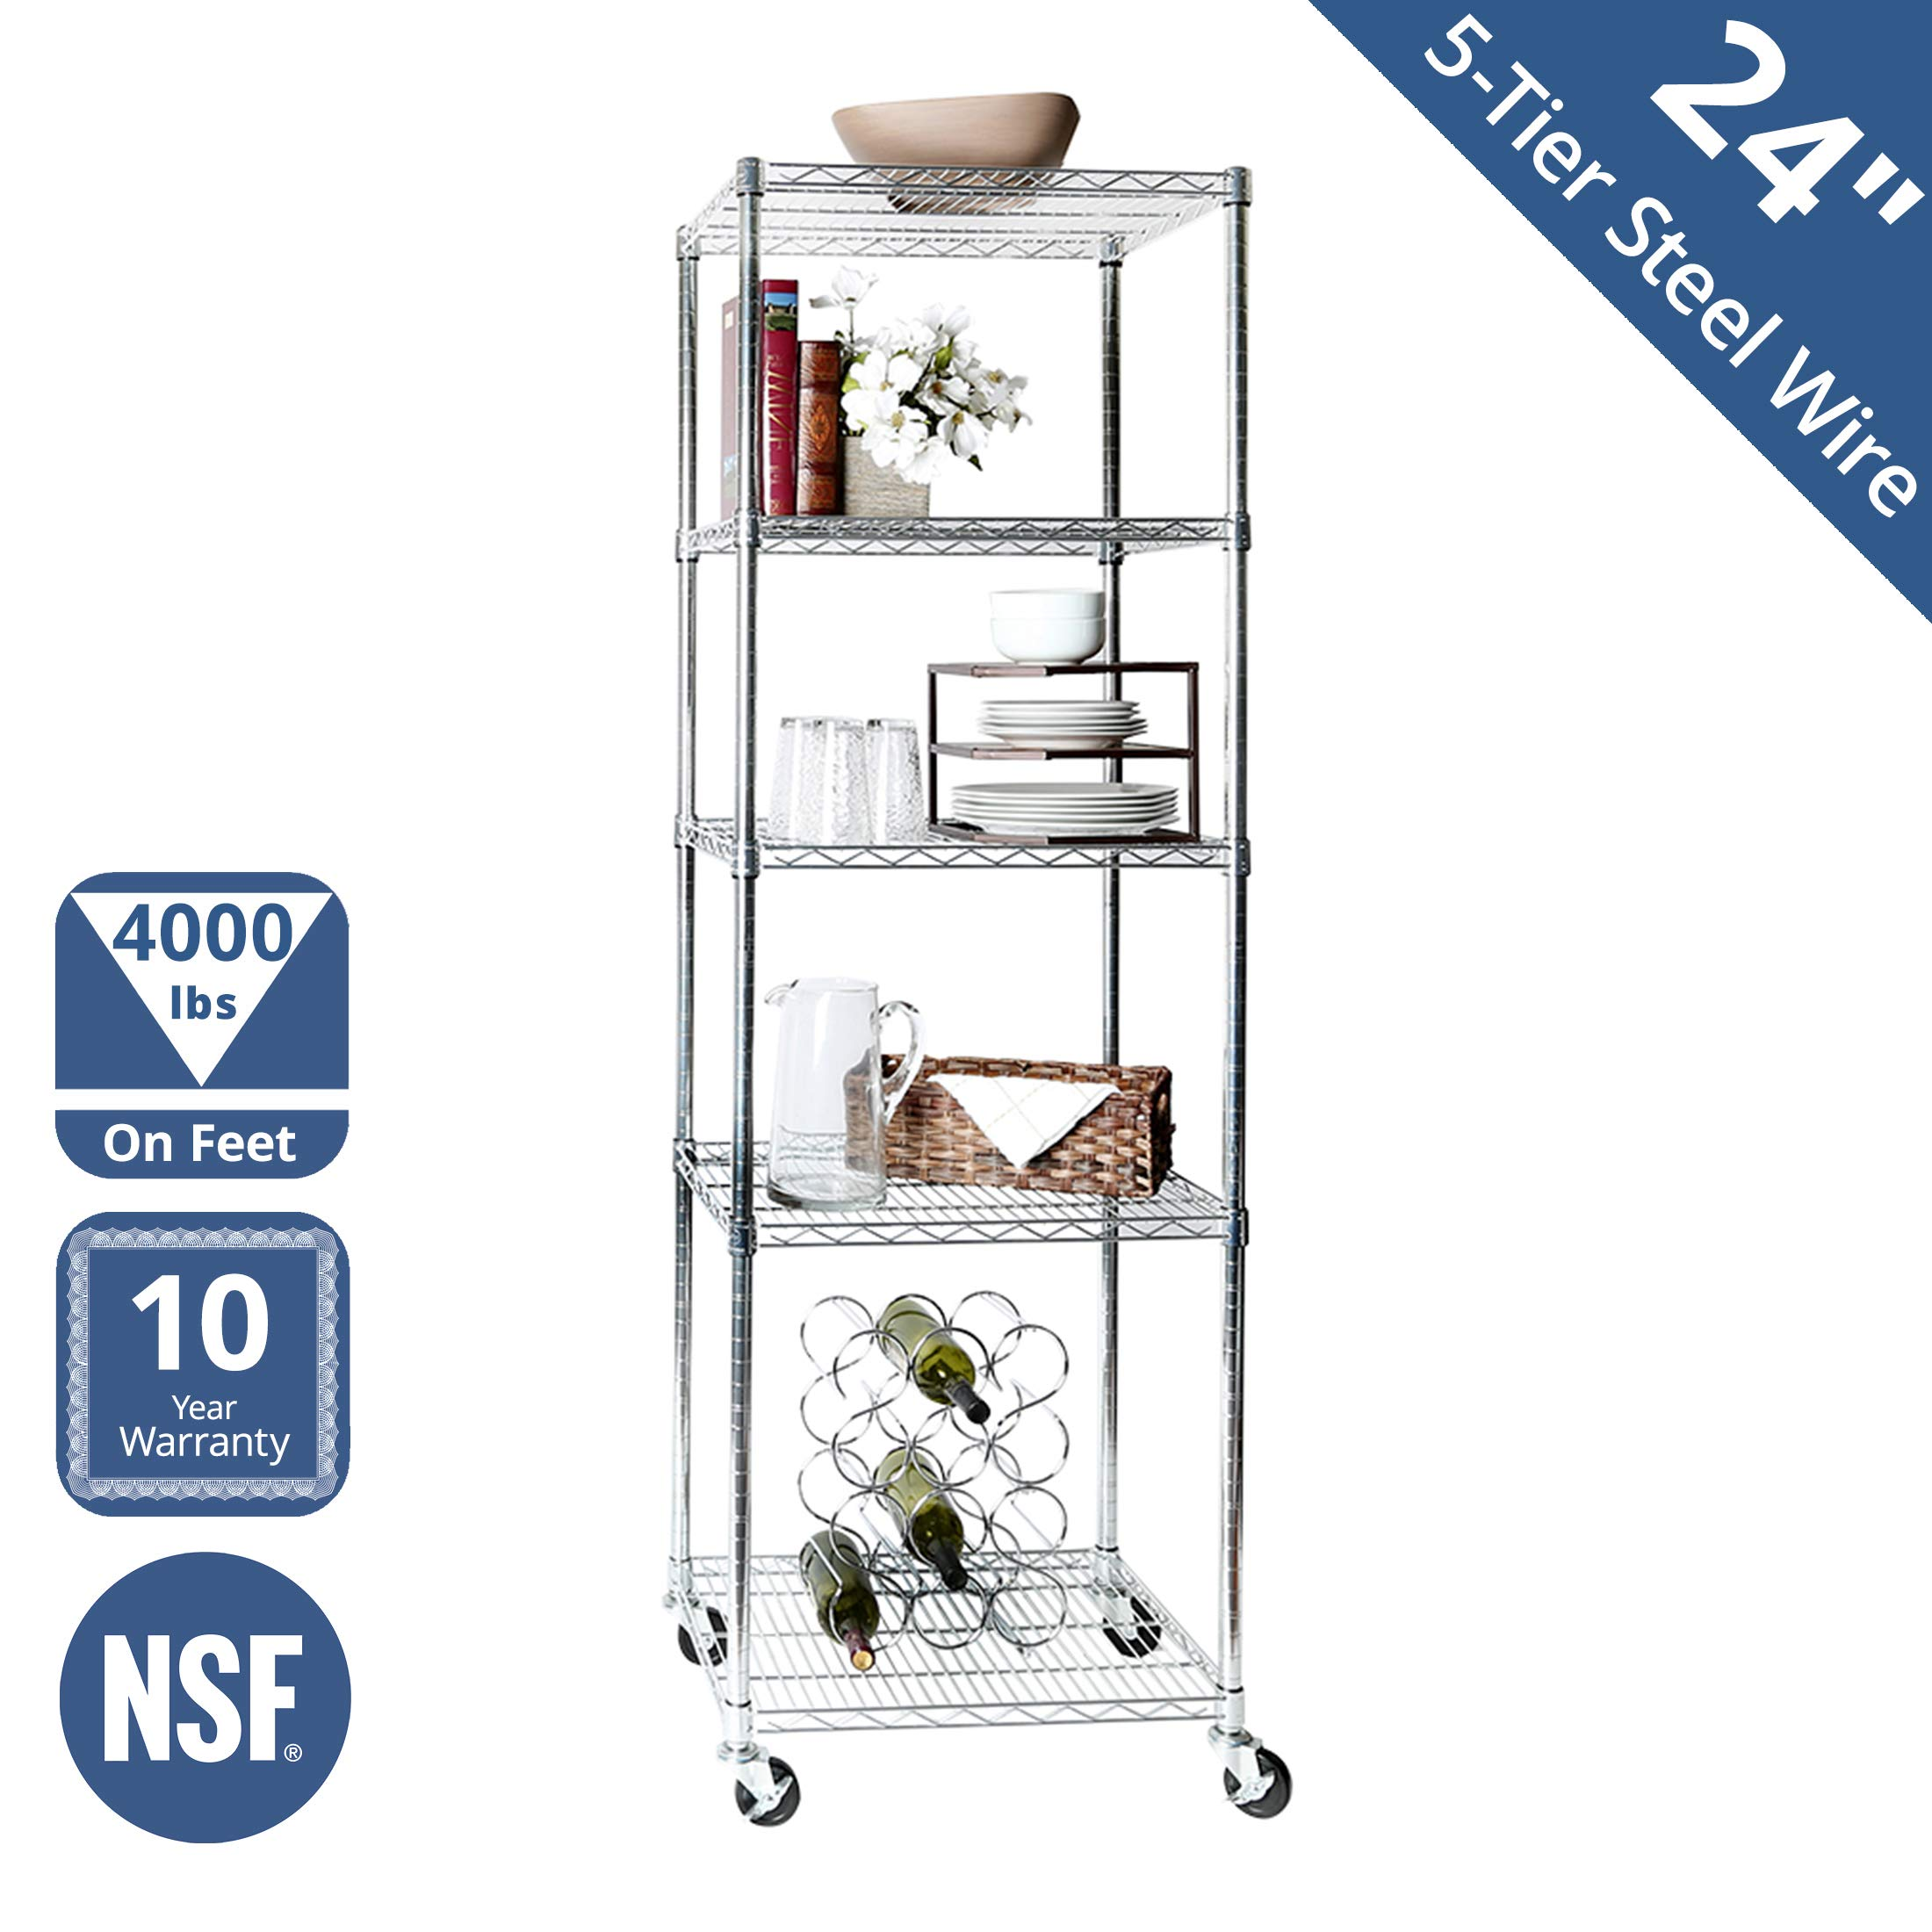 Seville Classics UltraDurable Commercial-Grade 5-Tier NSF-Certified Steel Wire Shelving with Wheels, 24'' W x 18'' D x 72'' H, Chrome by Seville Classics